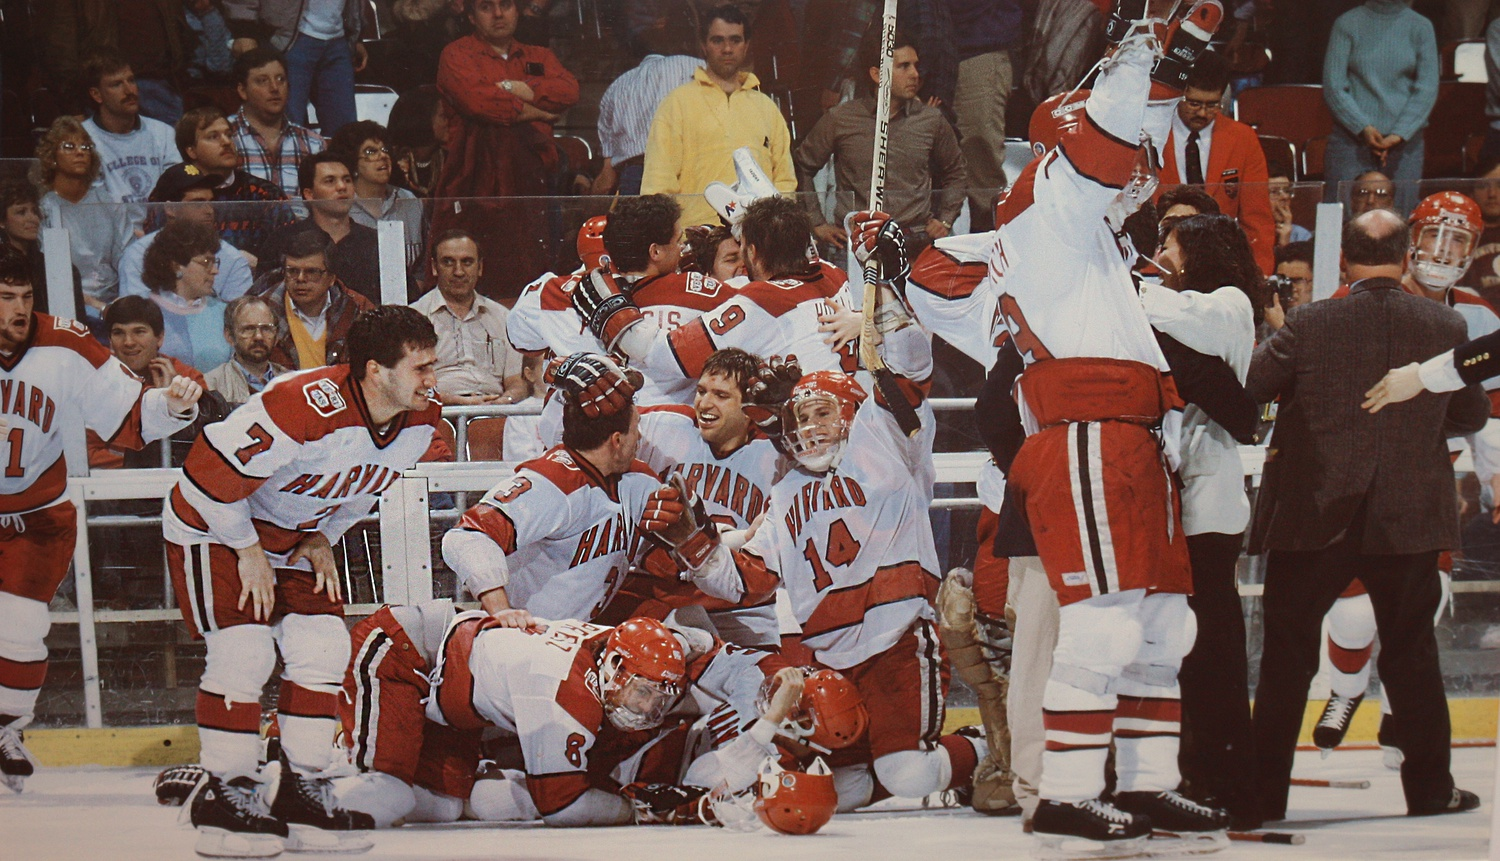 Thirty years ago, the Crimson won its first and only NCAA title in a 4-3 overtime thriller against Minnesota.